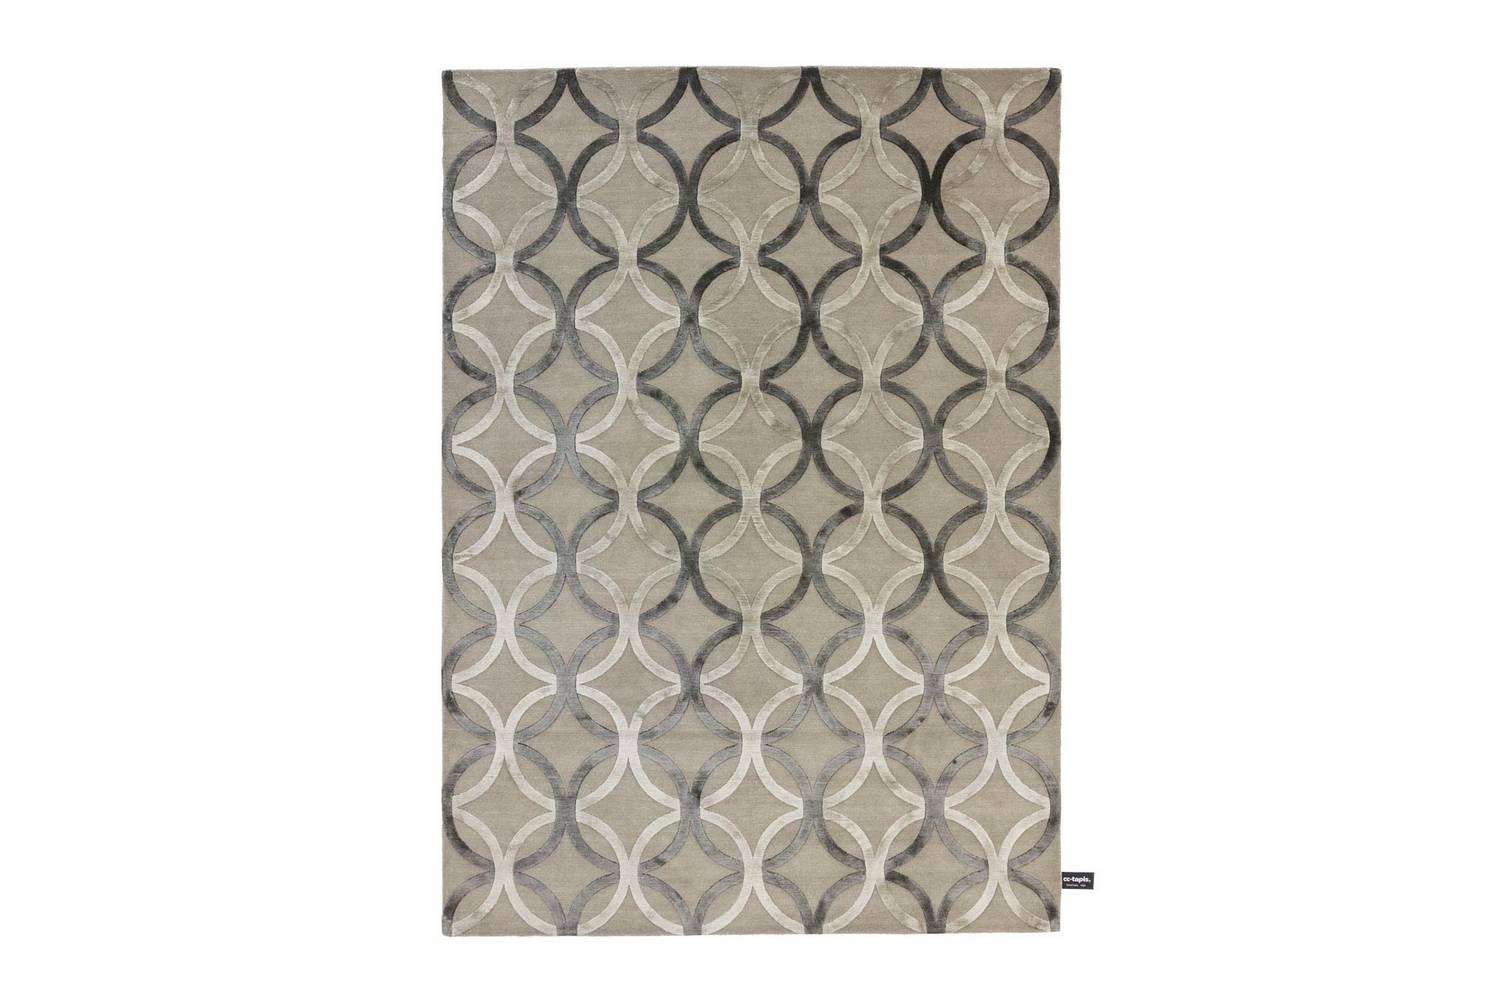 Mesh Rug by Contemporary Collection for CC-Tapis